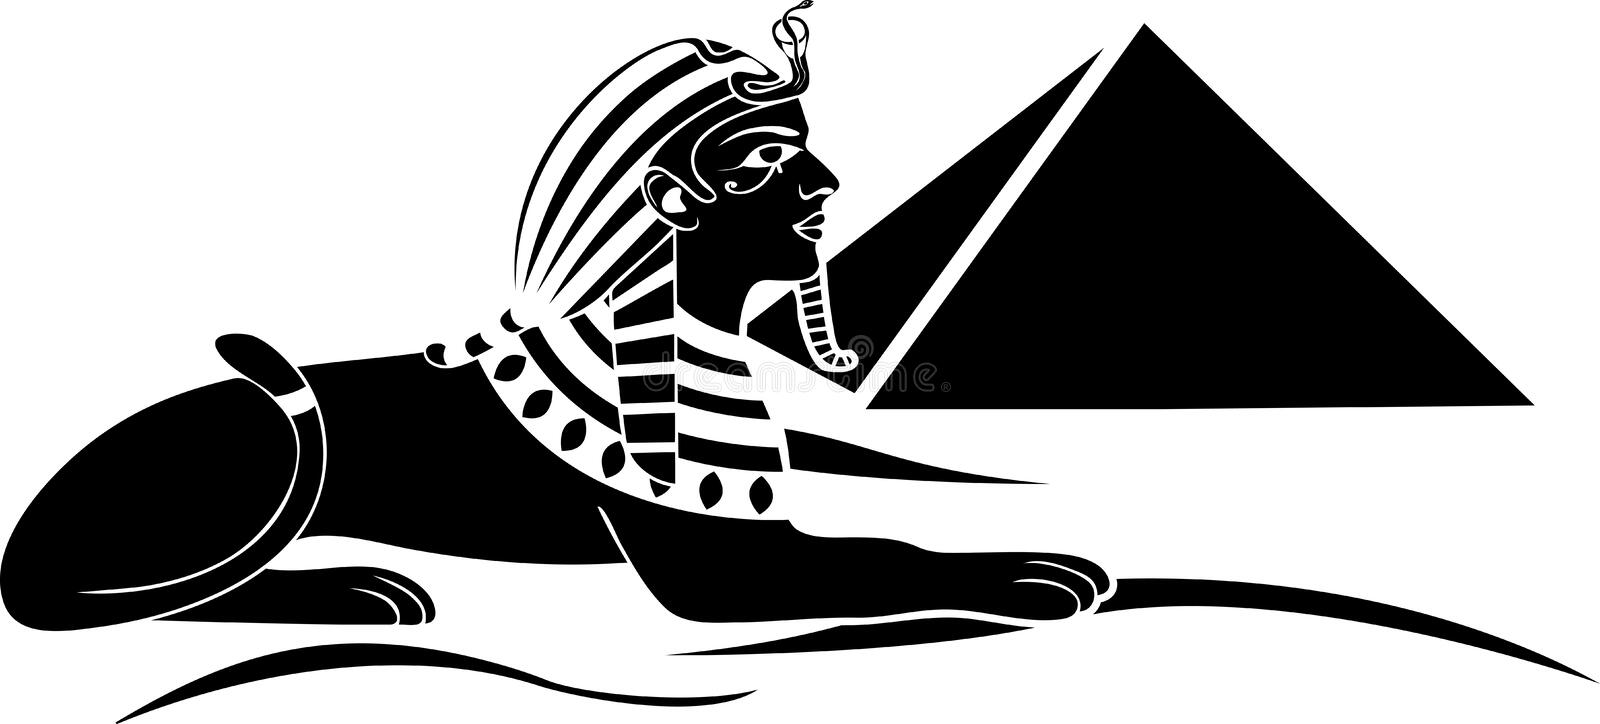 egyptian sphinx stock vector illustration of human sculpture rh dreamstime com great sphinx clipart sphinx clipart images